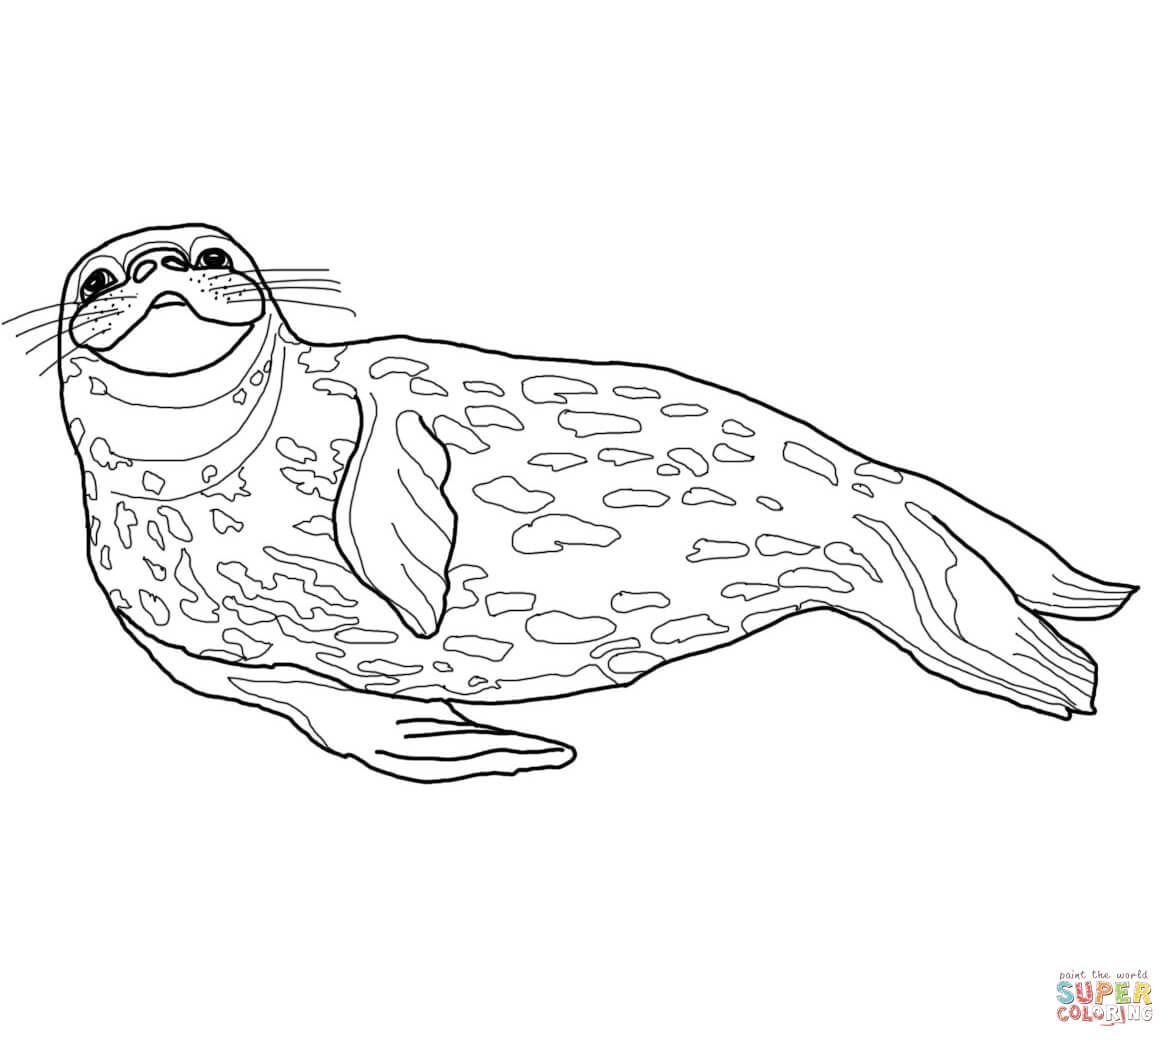 weddell seal  sea animals drawings coloring pages